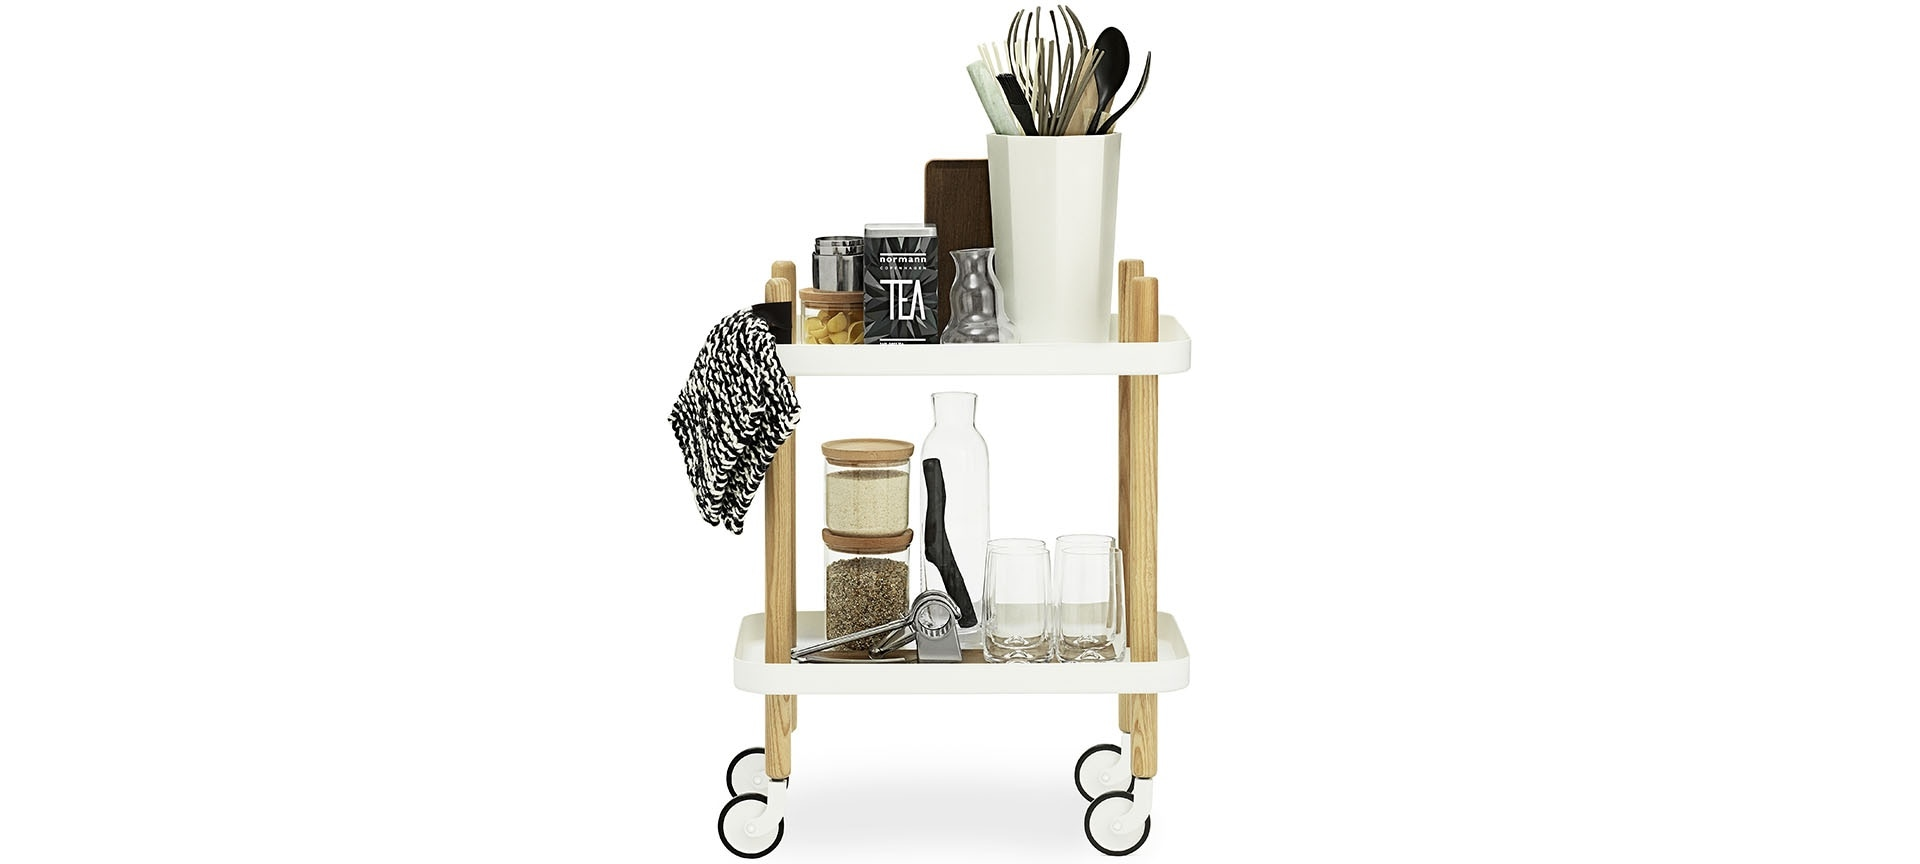 Desserte block table h64cm normann copenhagen blou paris - Normann copenhagen paris ...